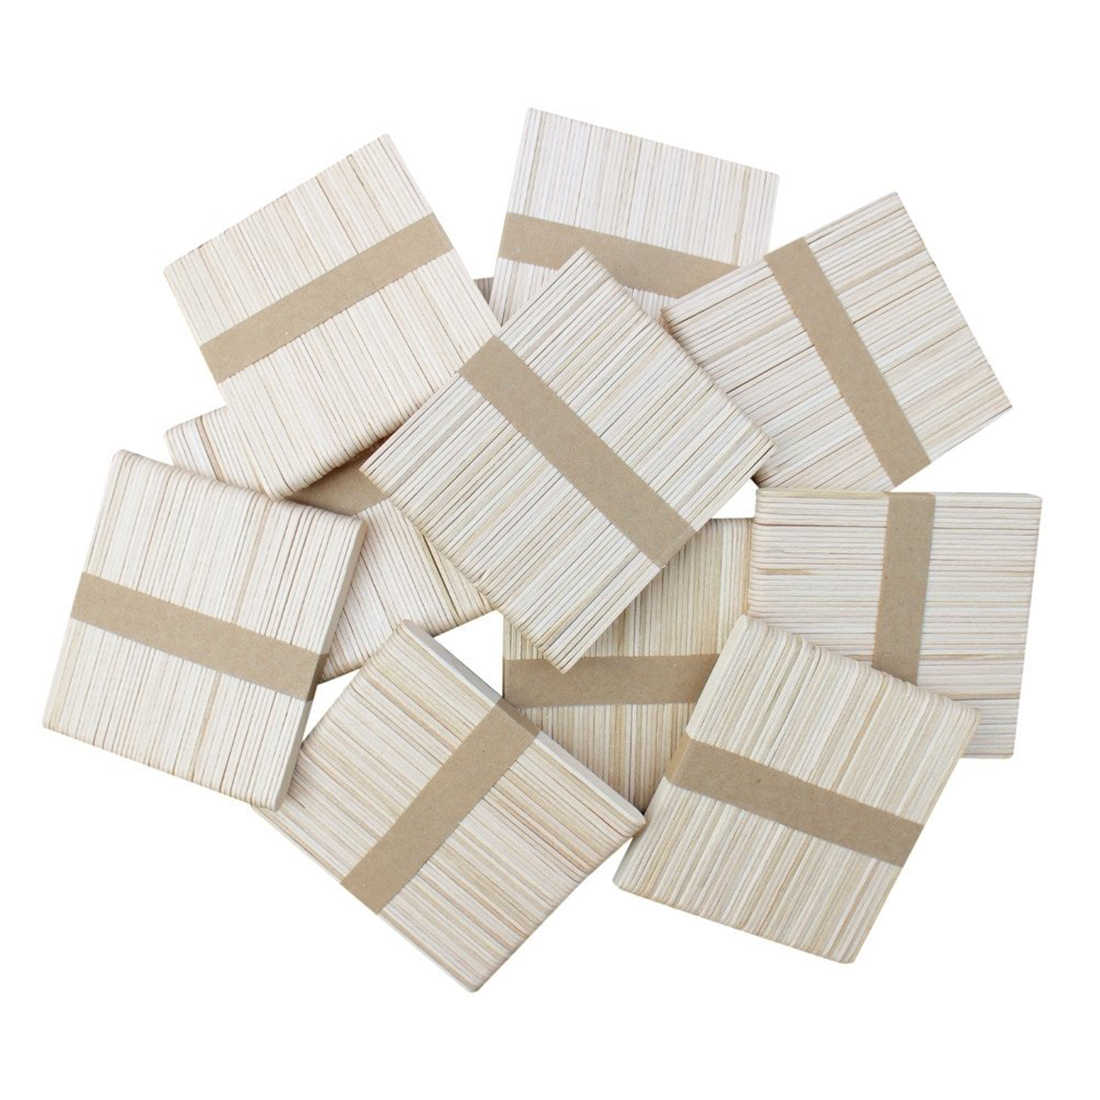 a1d0b1b121a Detail Feedback Questions about 300 PCS Natural Wood Popsicle Sticks,  Wooden Popsicle Stick, Homemade Ice Cream Sticks, Natural Wood Craft Sticks,  ...